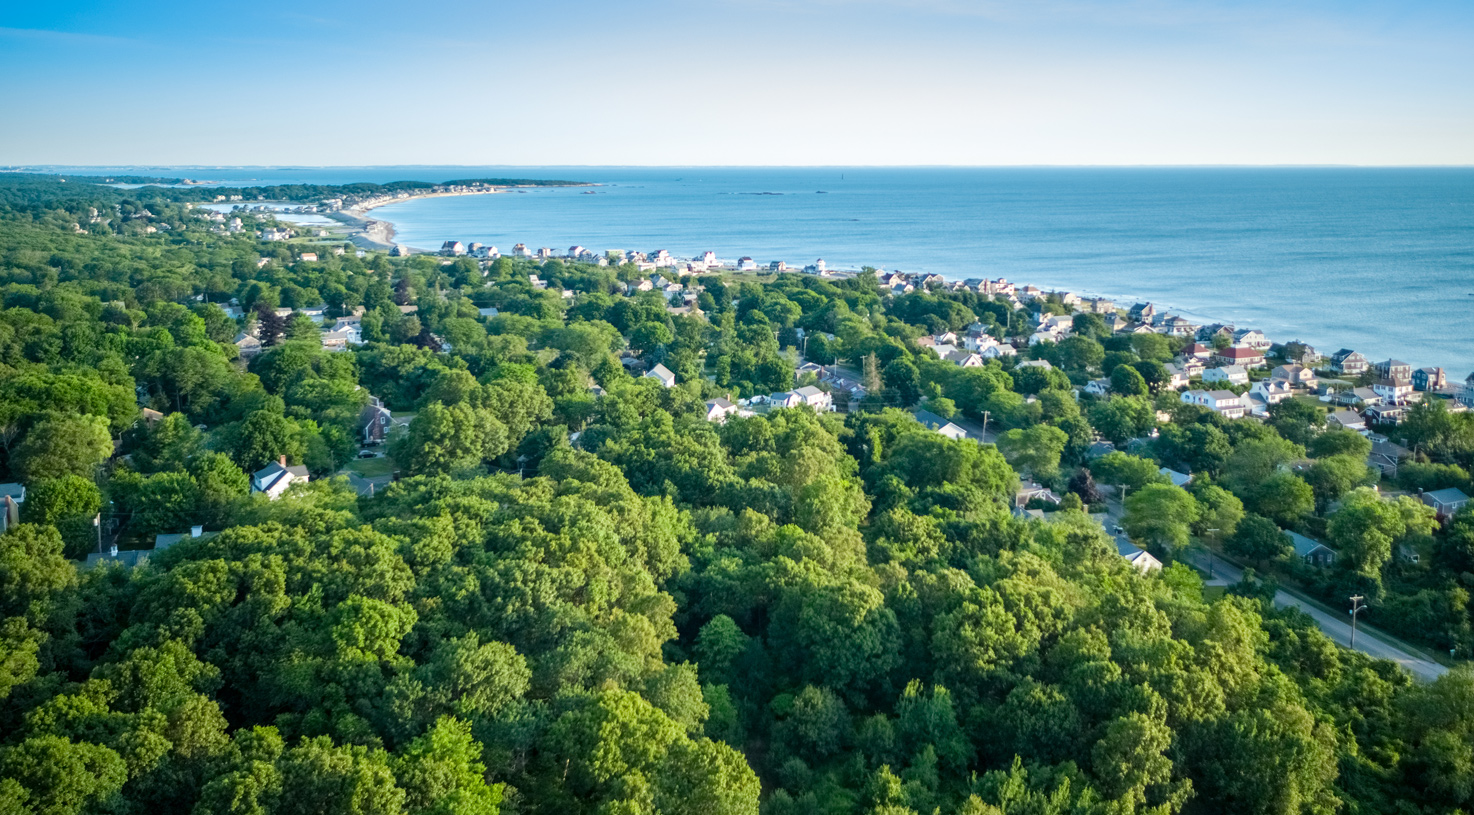 The ocean is at your doorstep - Scituate has five public beaches